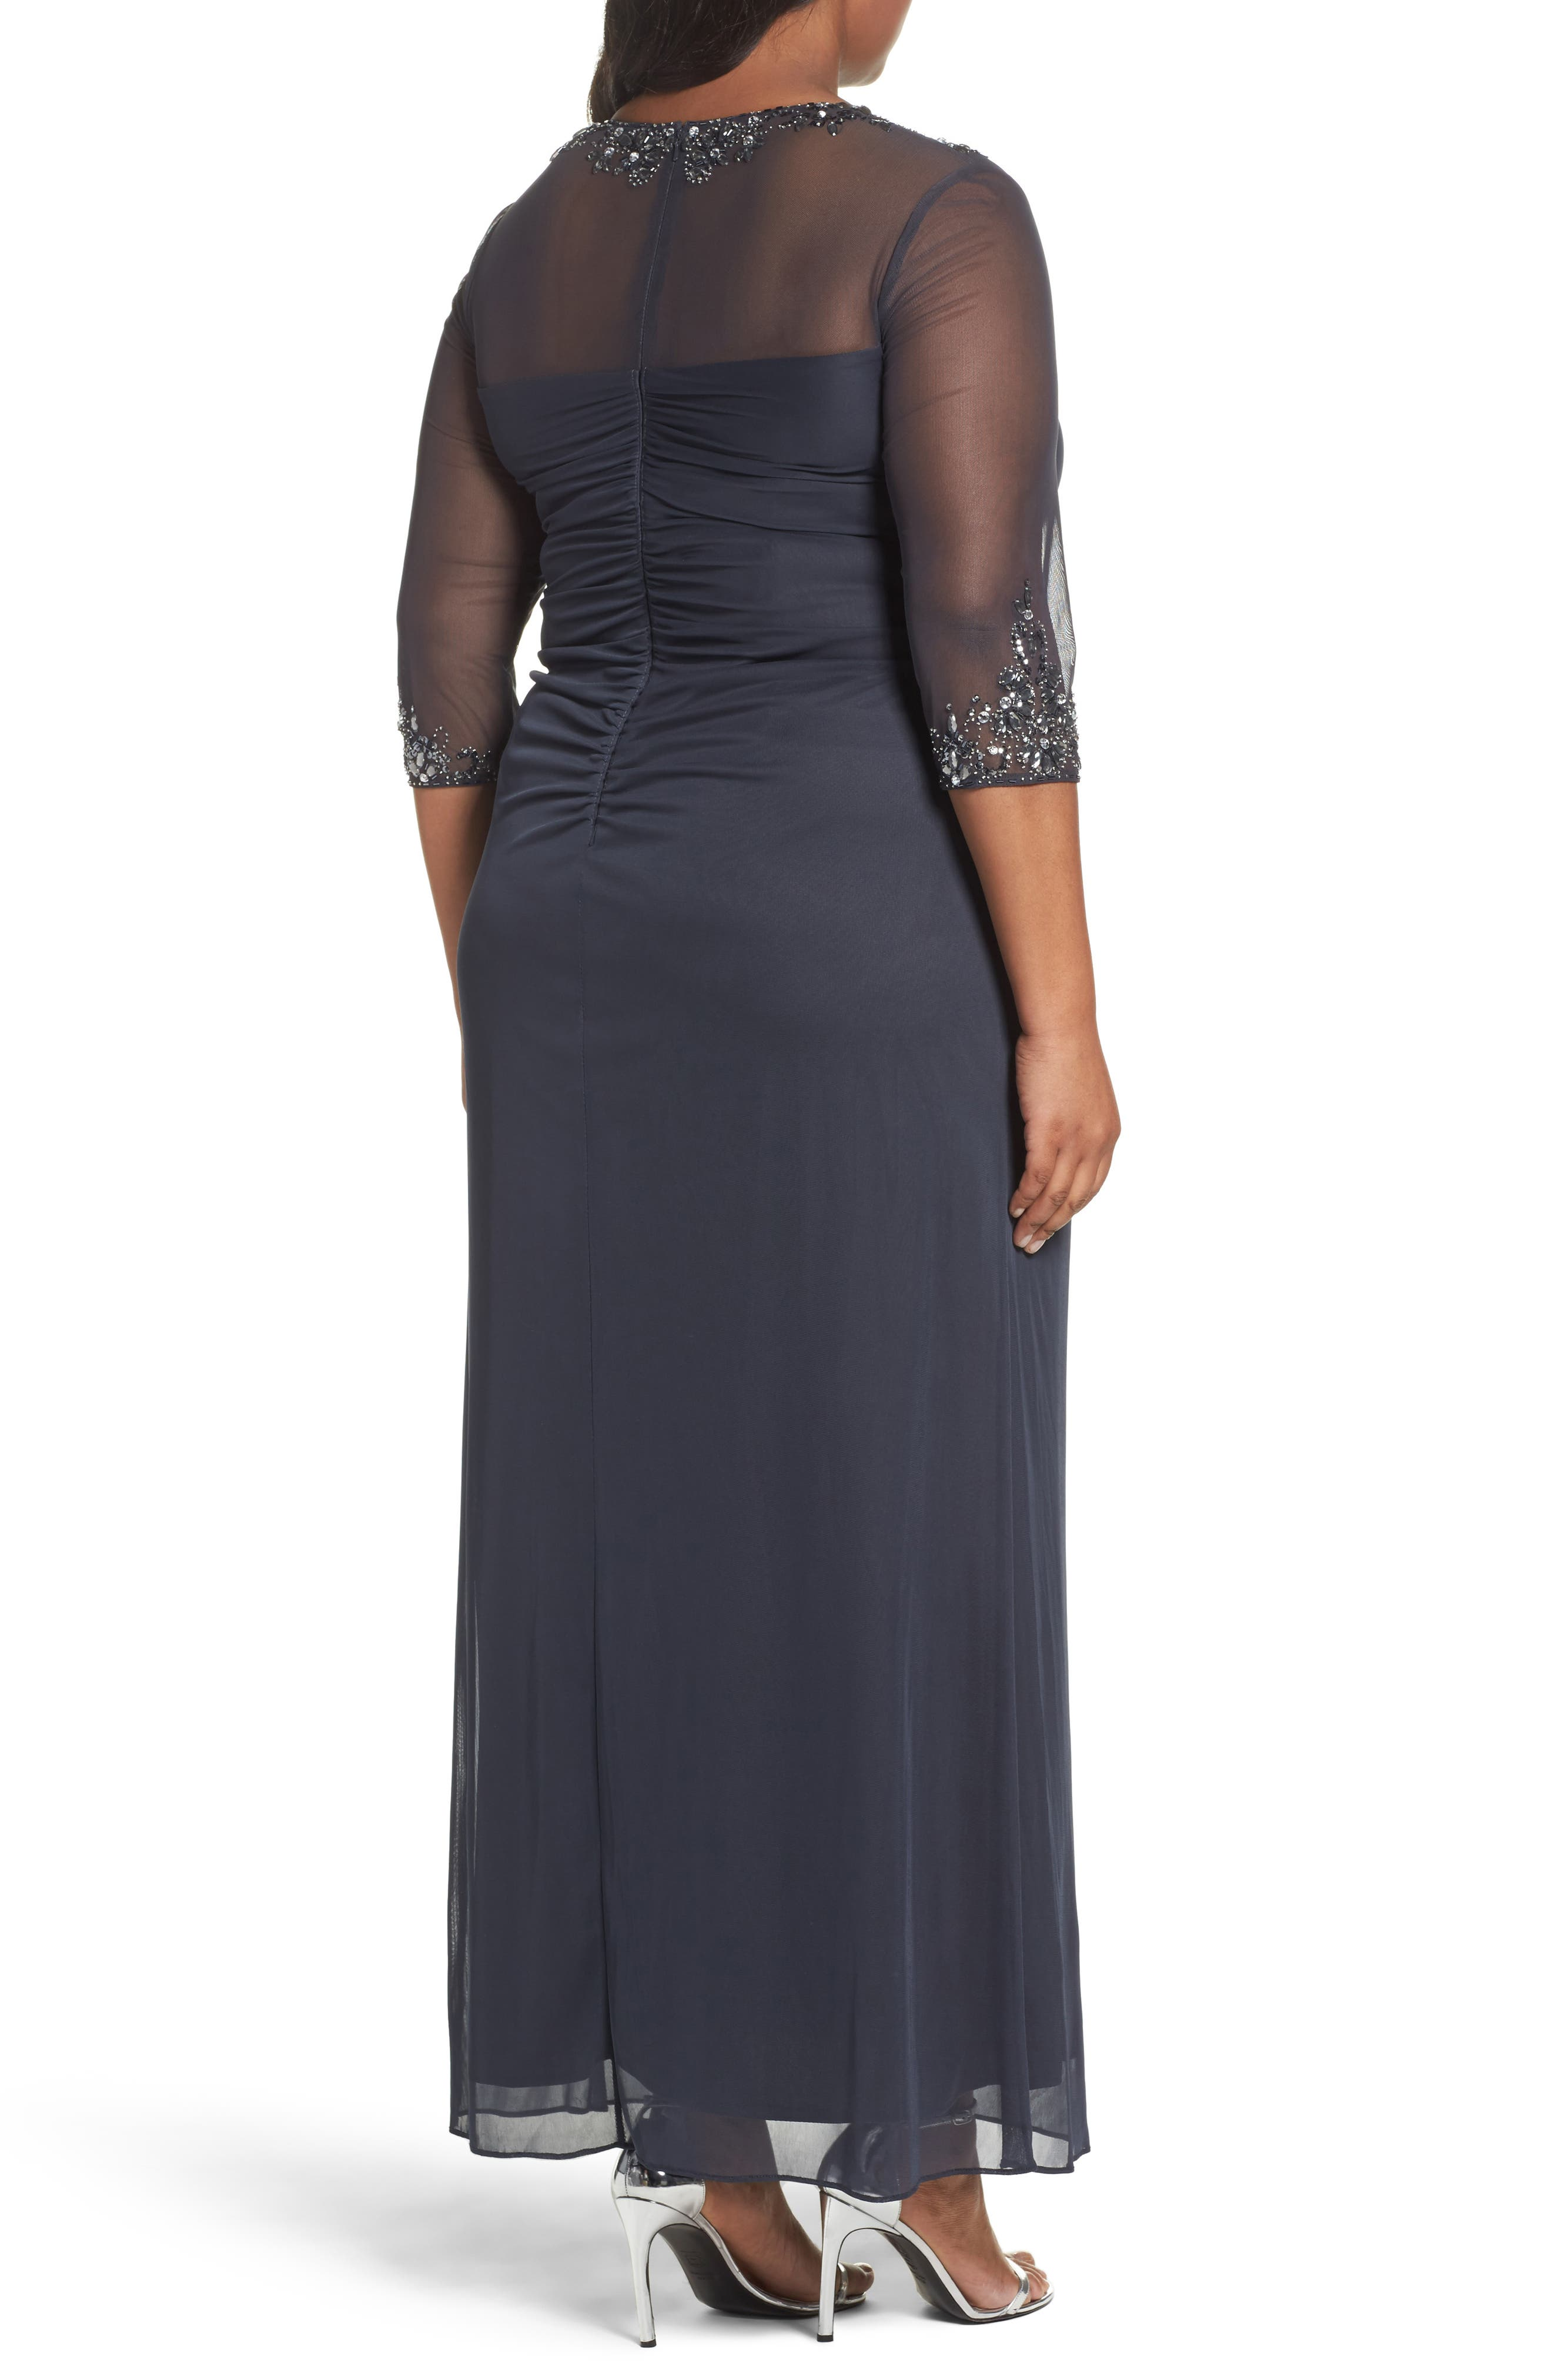 ALEX EVENINGS,                             Embellished Side Pleat Sweetheart Gown,                             Alternate thumbnail 2, color,                             CHARCOAL